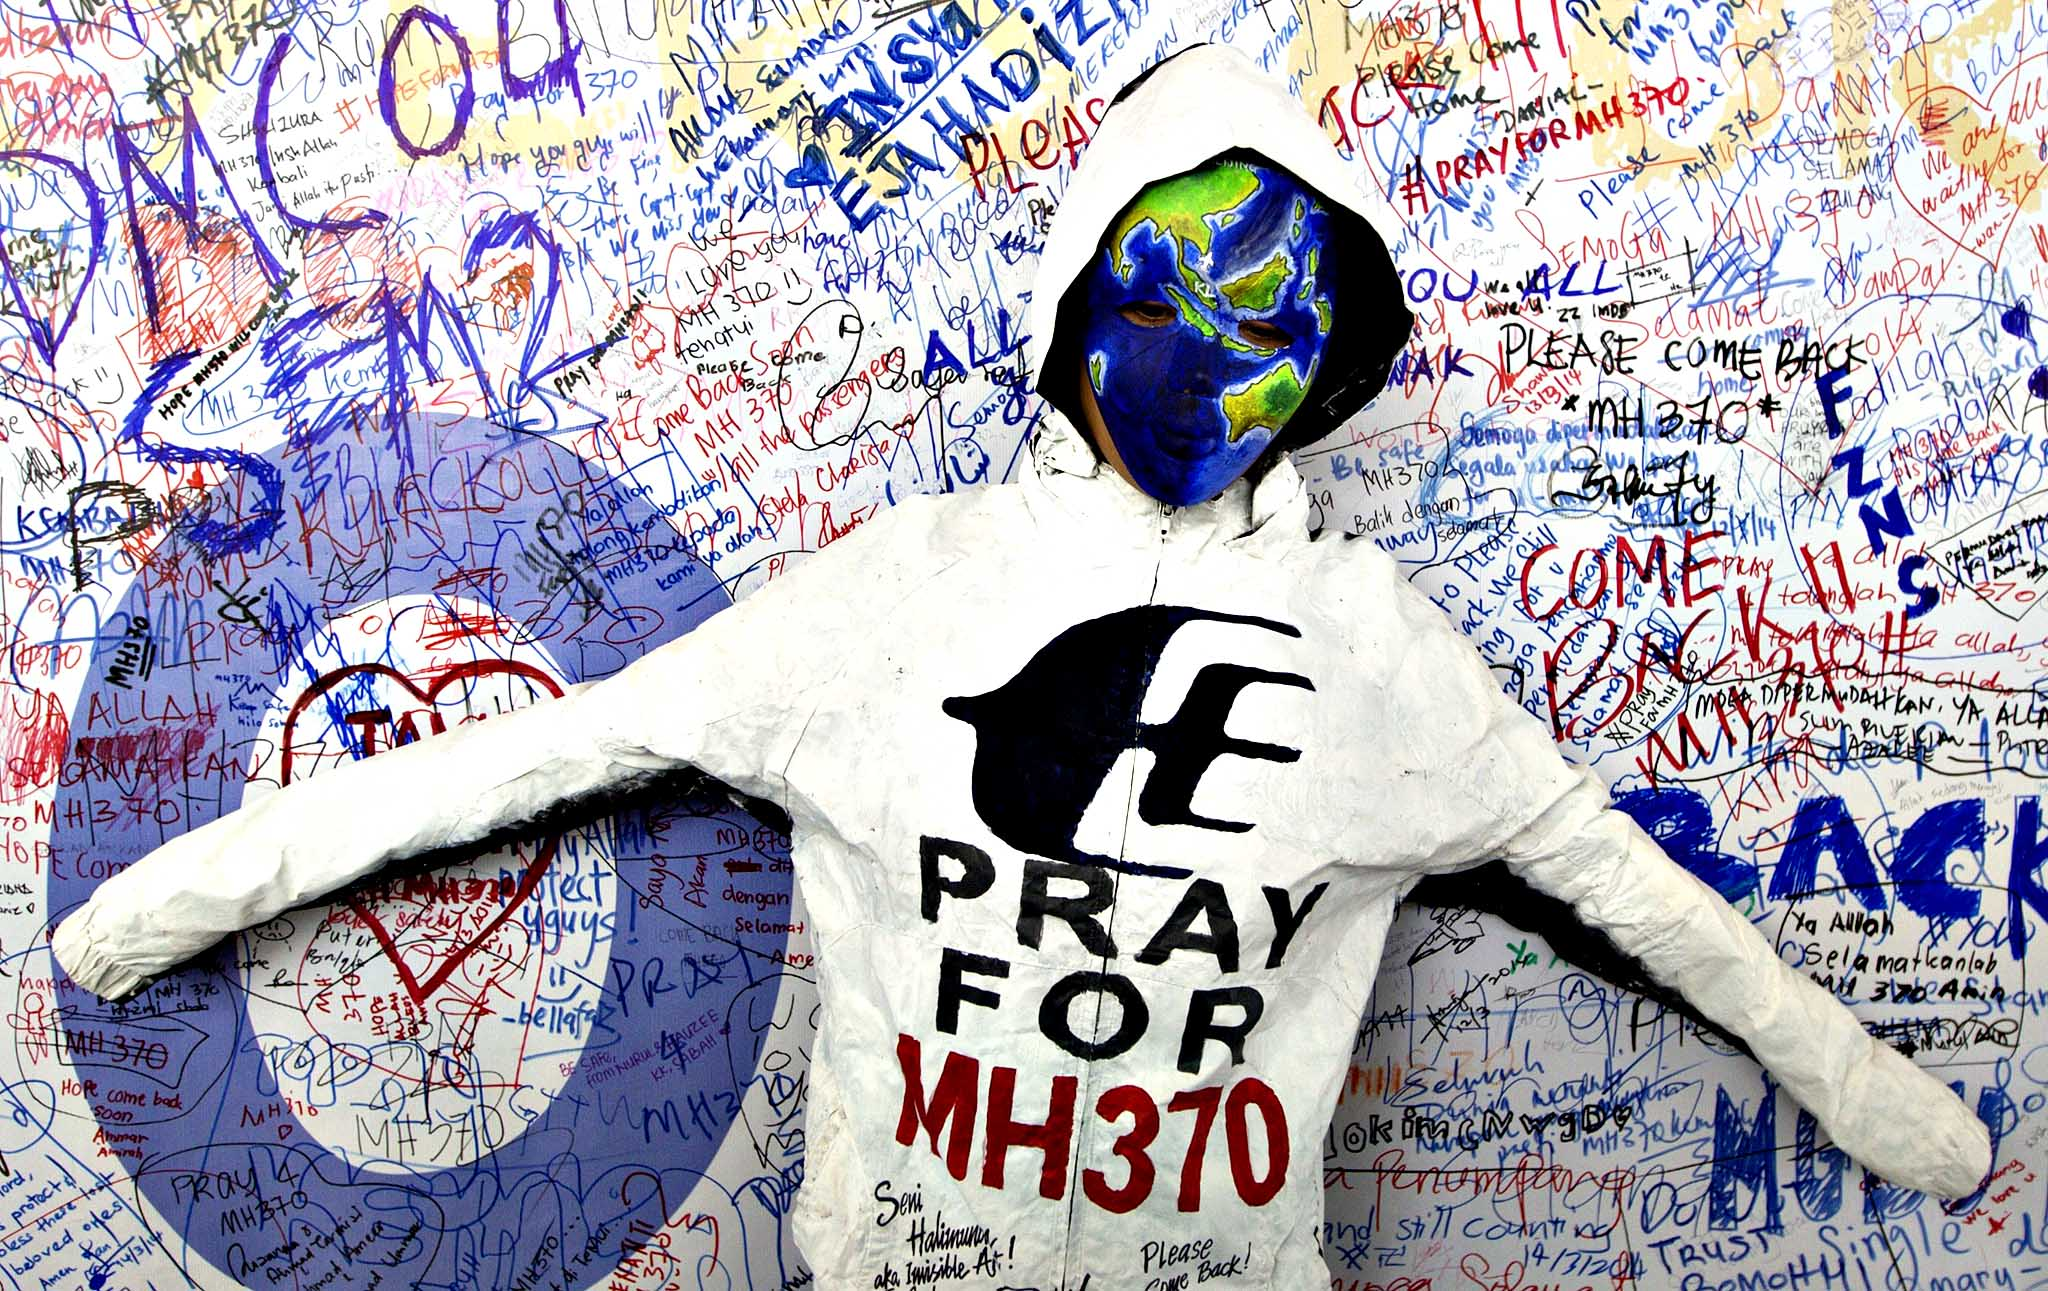 An artwork by Malaysian artist Safirah Rashid is seen at the Wall of Hope for the passengers of the missing Malaysian Airlines plane at Kuala Lumpur International Airport, Malaysia, 17 March 2014. China sharply criticized Malaysia for its handling of an investigation into the disappearance of a commercial aircraft with 239 people aboard nine days ago. The criticism came as a Malaysian police source ruled out a connection between the pilot's political affiliations and the disappearance of Malaysia Airlines flight MH 370.